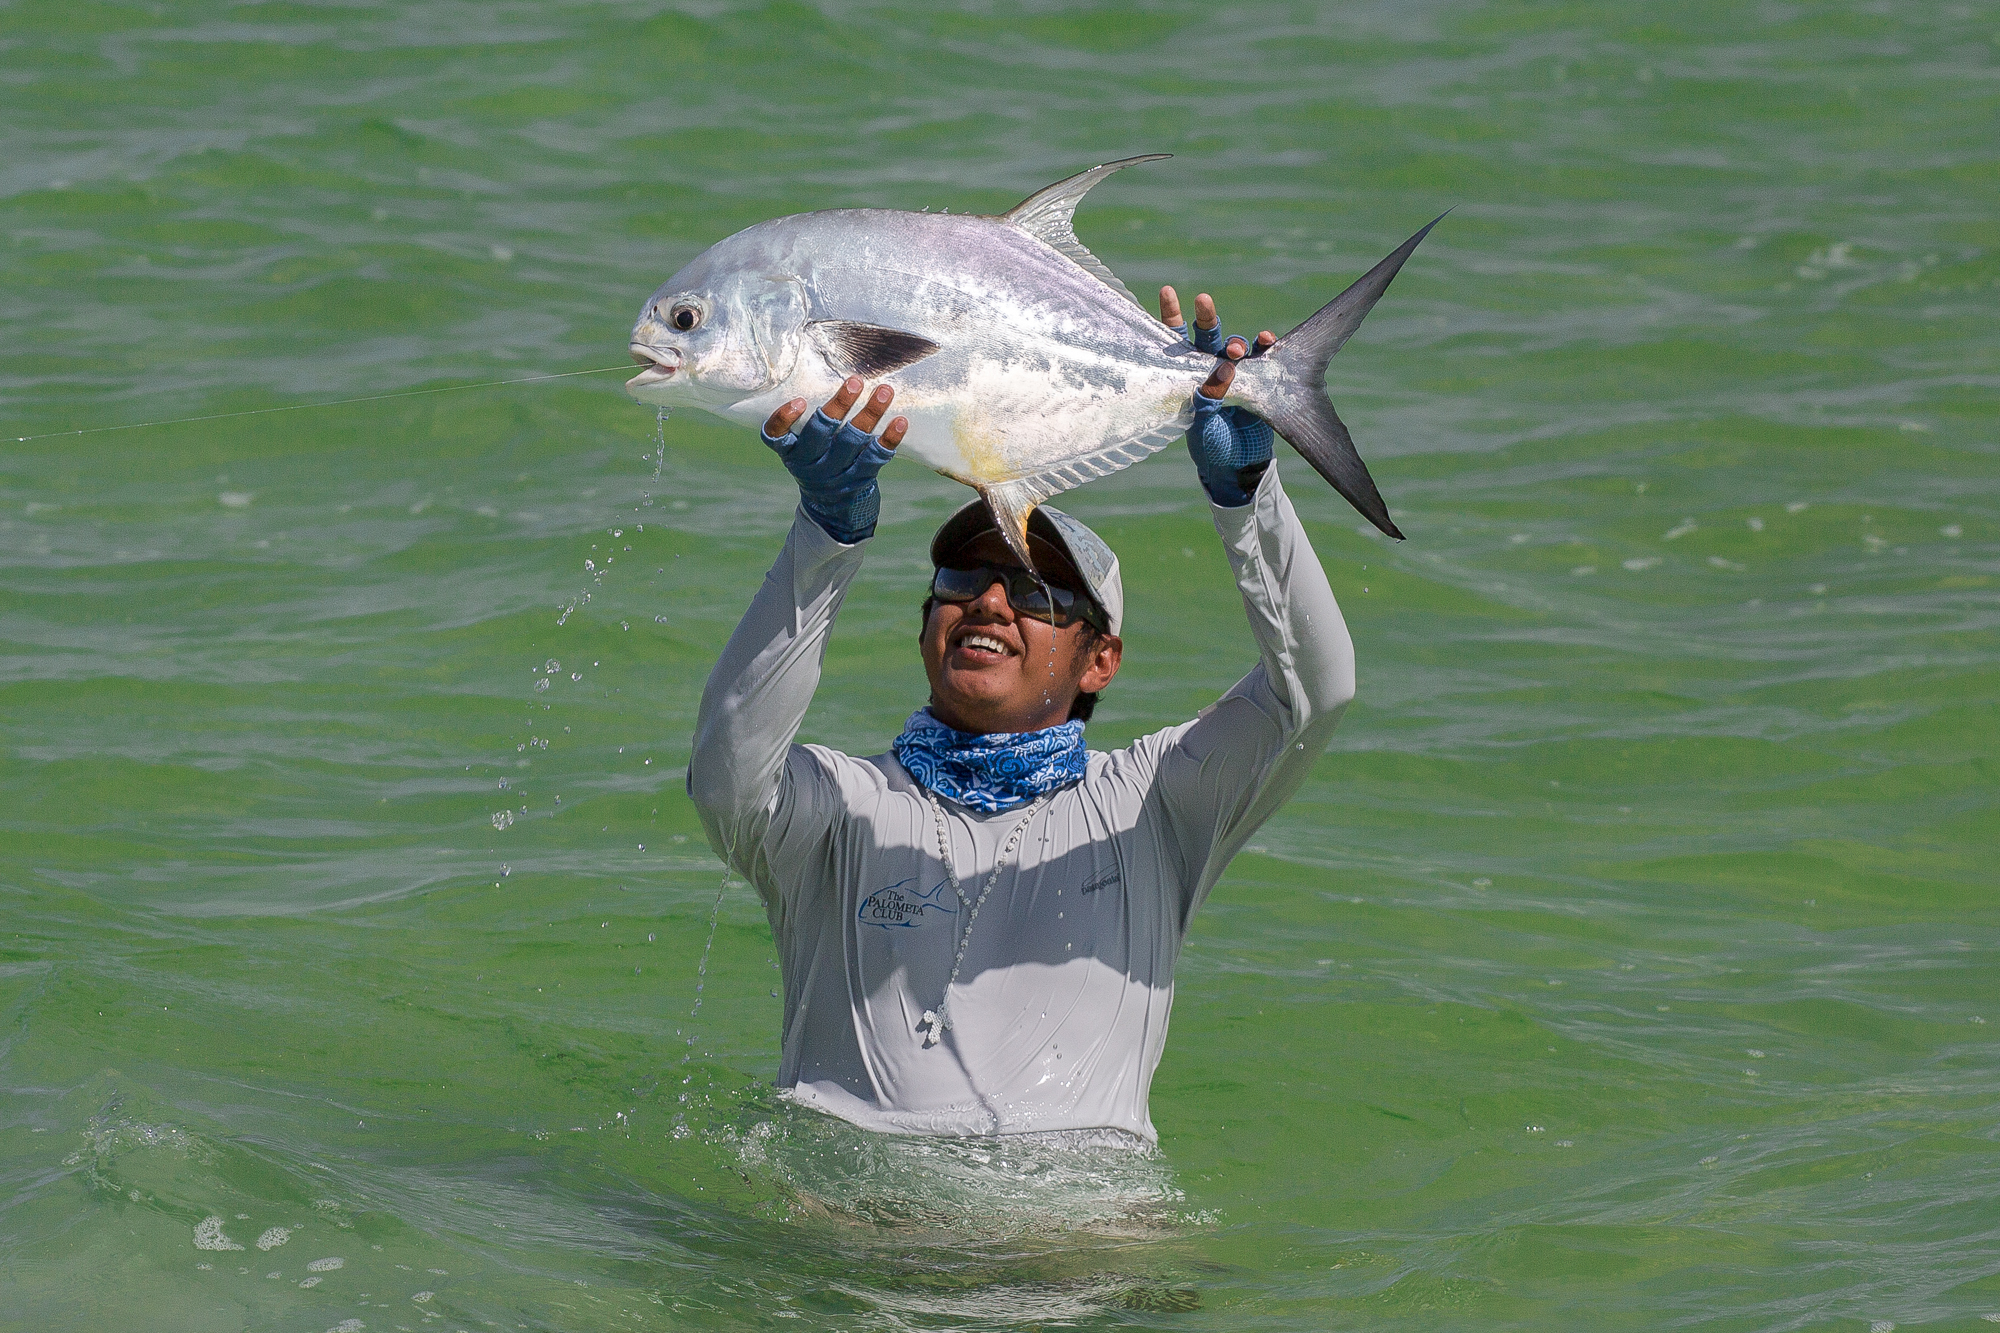 (2/3) Every permit is celebrated, but this one perhaps more so. After a week of tough weather and morning encounter that saw a securely hooked permit broken off by a certain over-zealous angler, the cradling and hoisting of this fine specimen brings a collective sense of elation to both guides and anglers. (photo: Chad Shmukler)